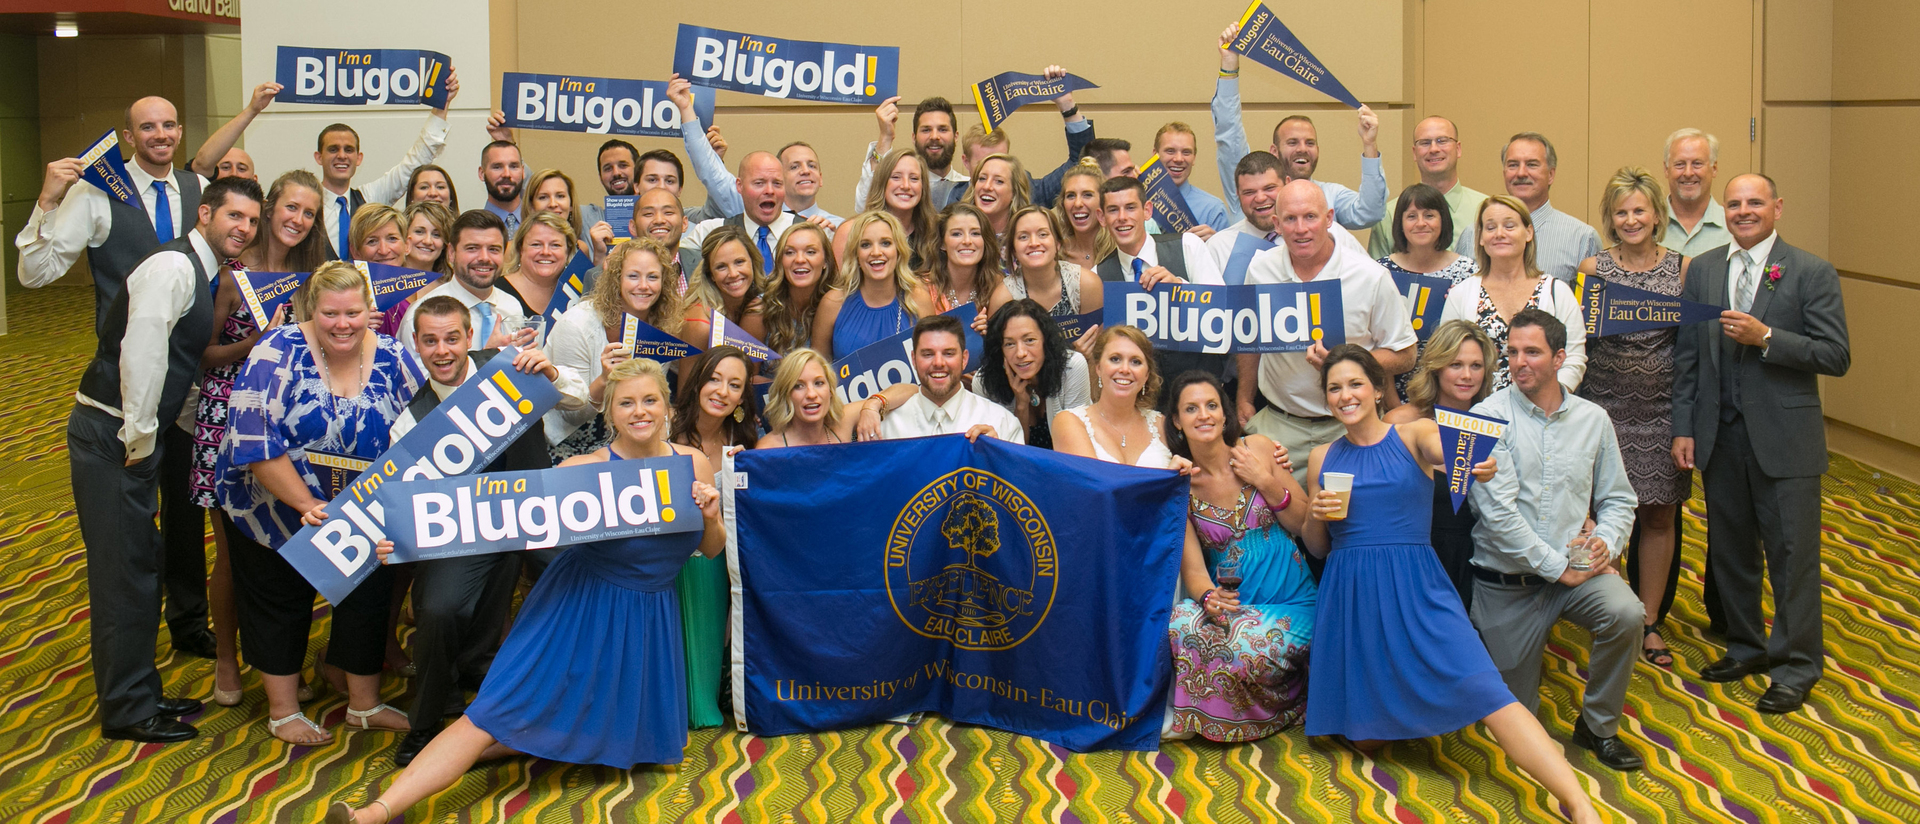 Ryan Shaefer, Heidi Hietpas and 60-plus Blugold family and friends at their August 2016 wedding.